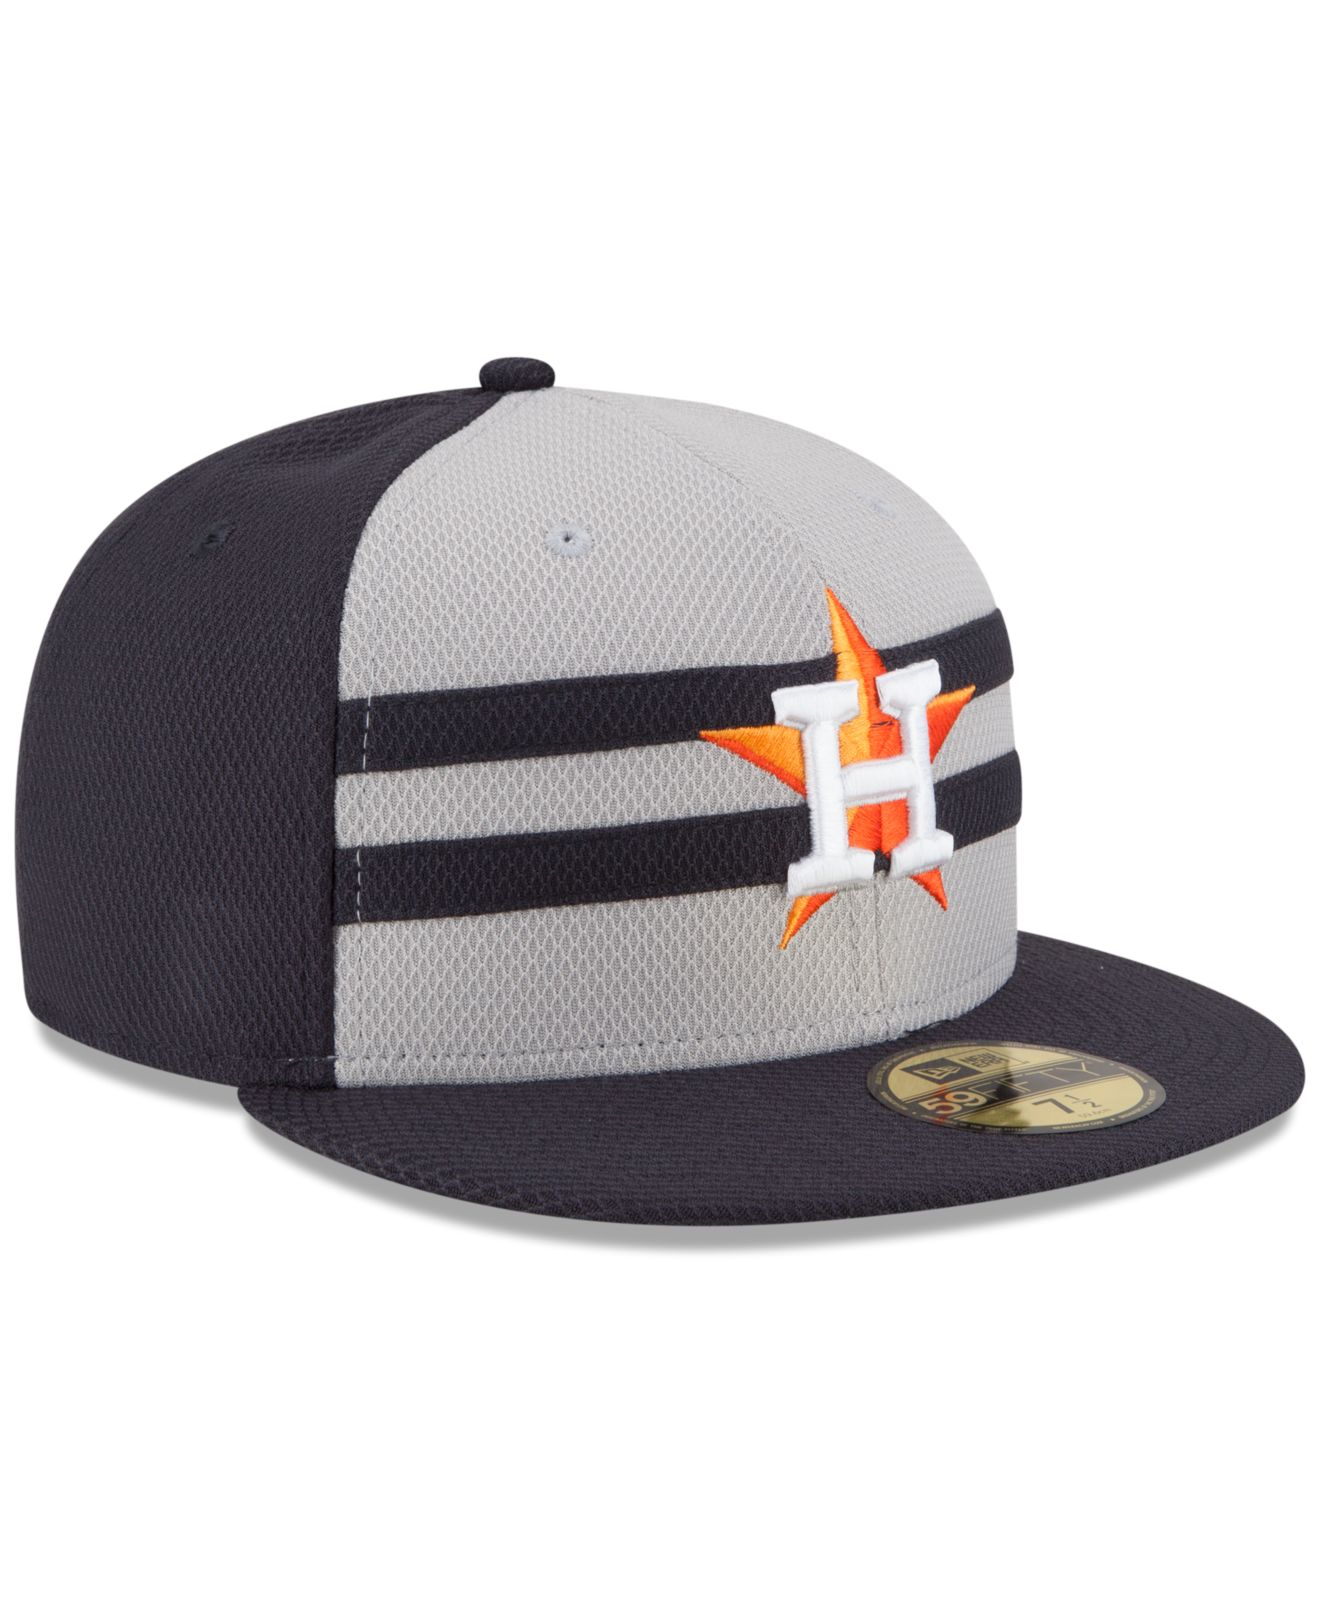 on sale ee258 31c29 get houston astros all star hat 9c5a4 c8f3e